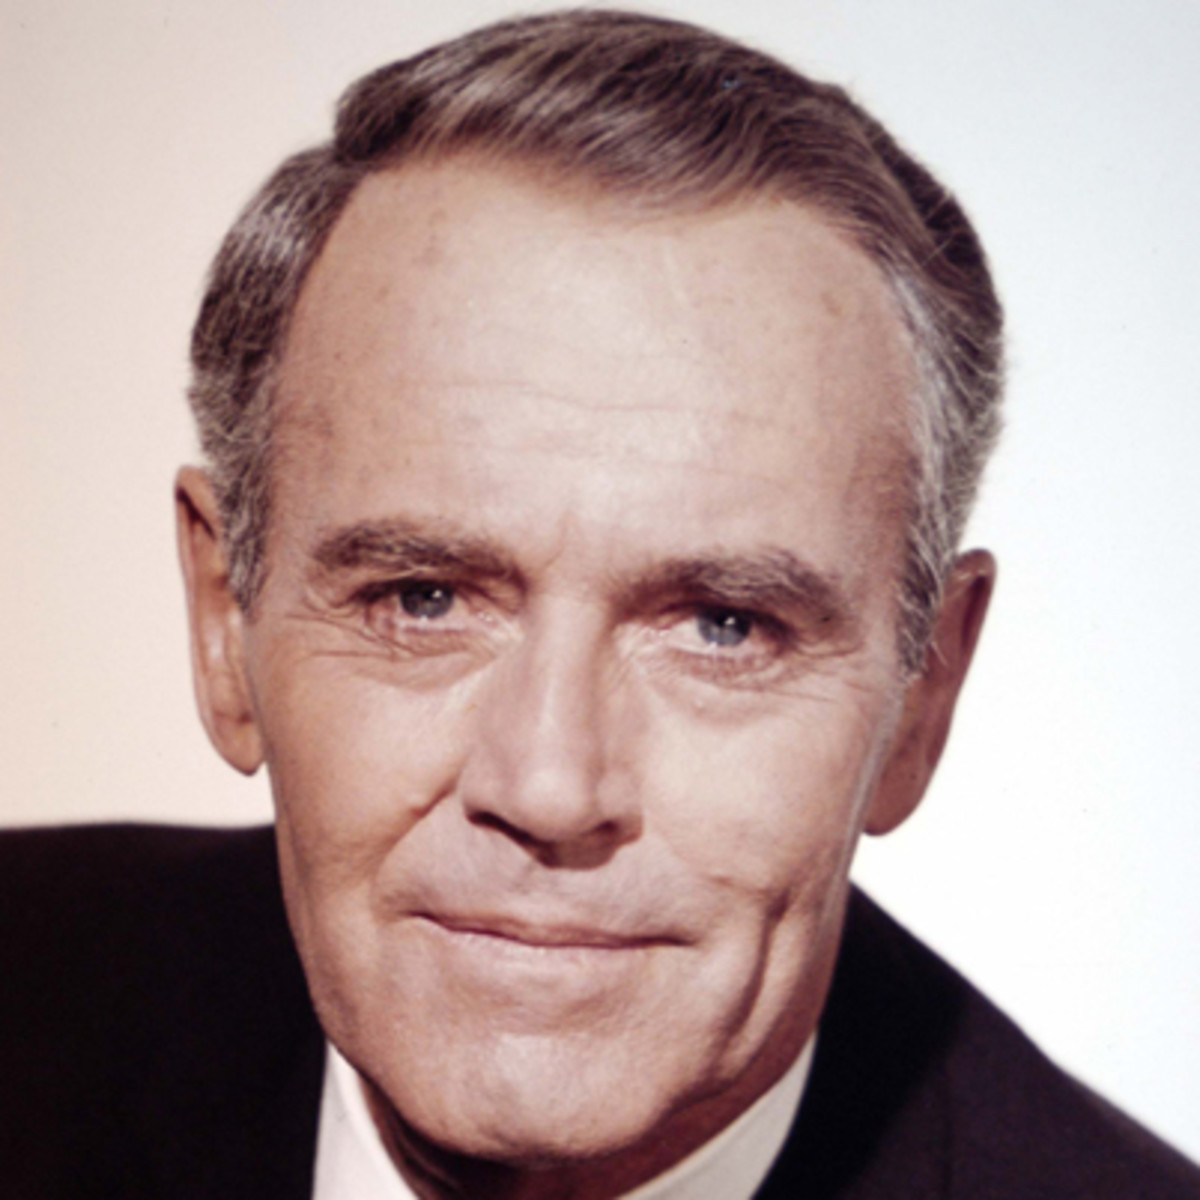 Quotes Of Henry Ford >> Henry Fonda - Actor, Film Actor, Theater Actor, Television Actor - Biography